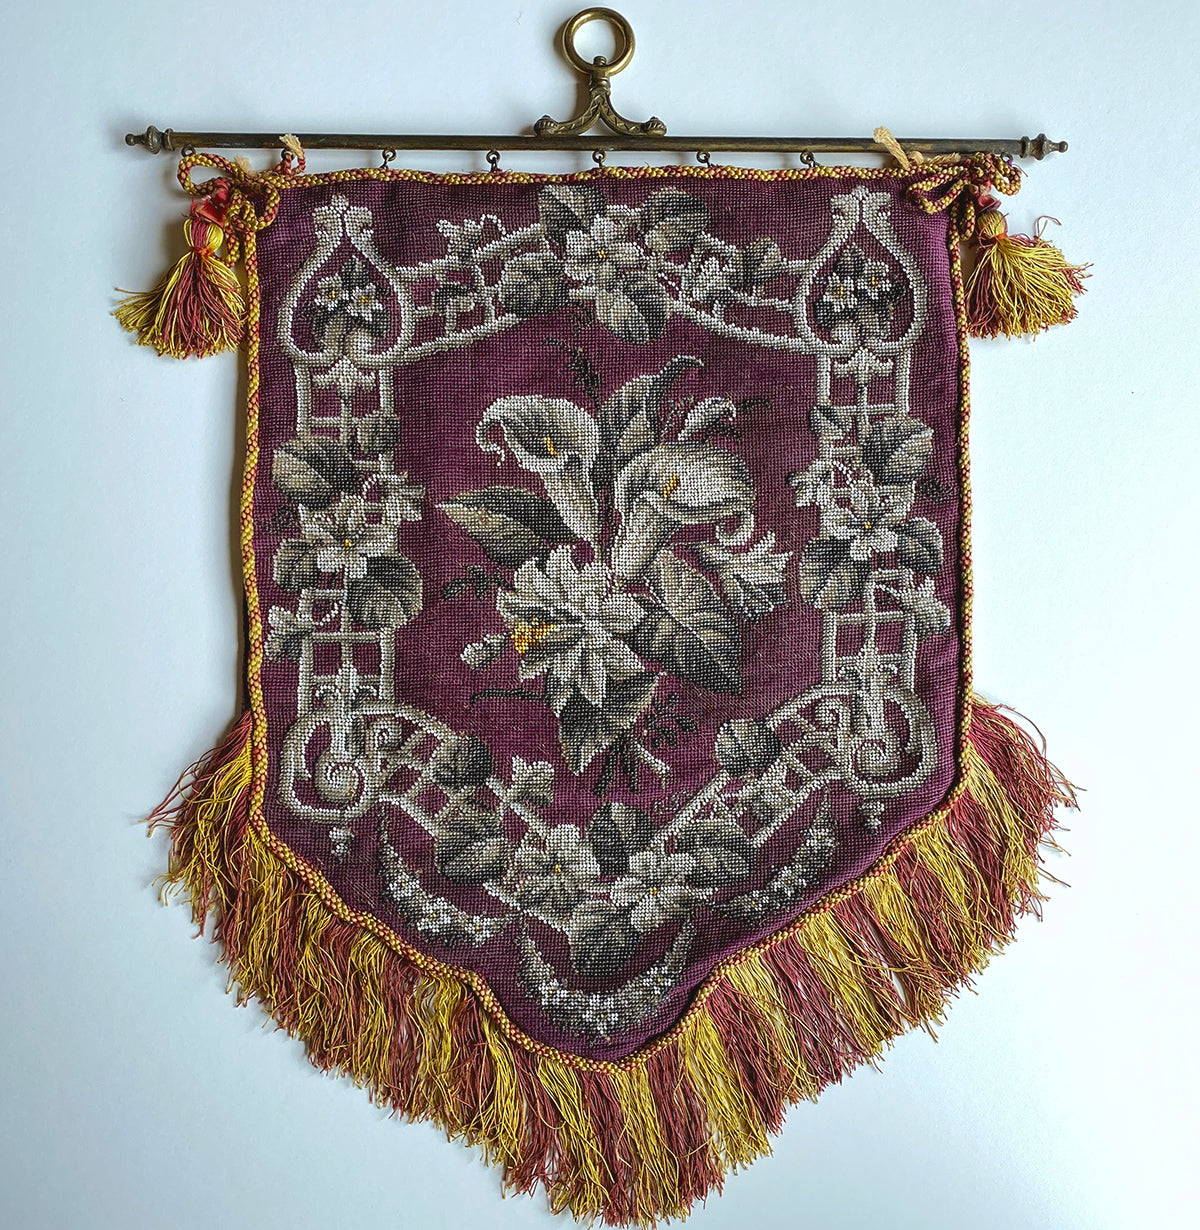 Antique mid-1800s Victorian Beadwork Needlepoint Fire Screen, Bracket and French Fringe, For Pillow Top